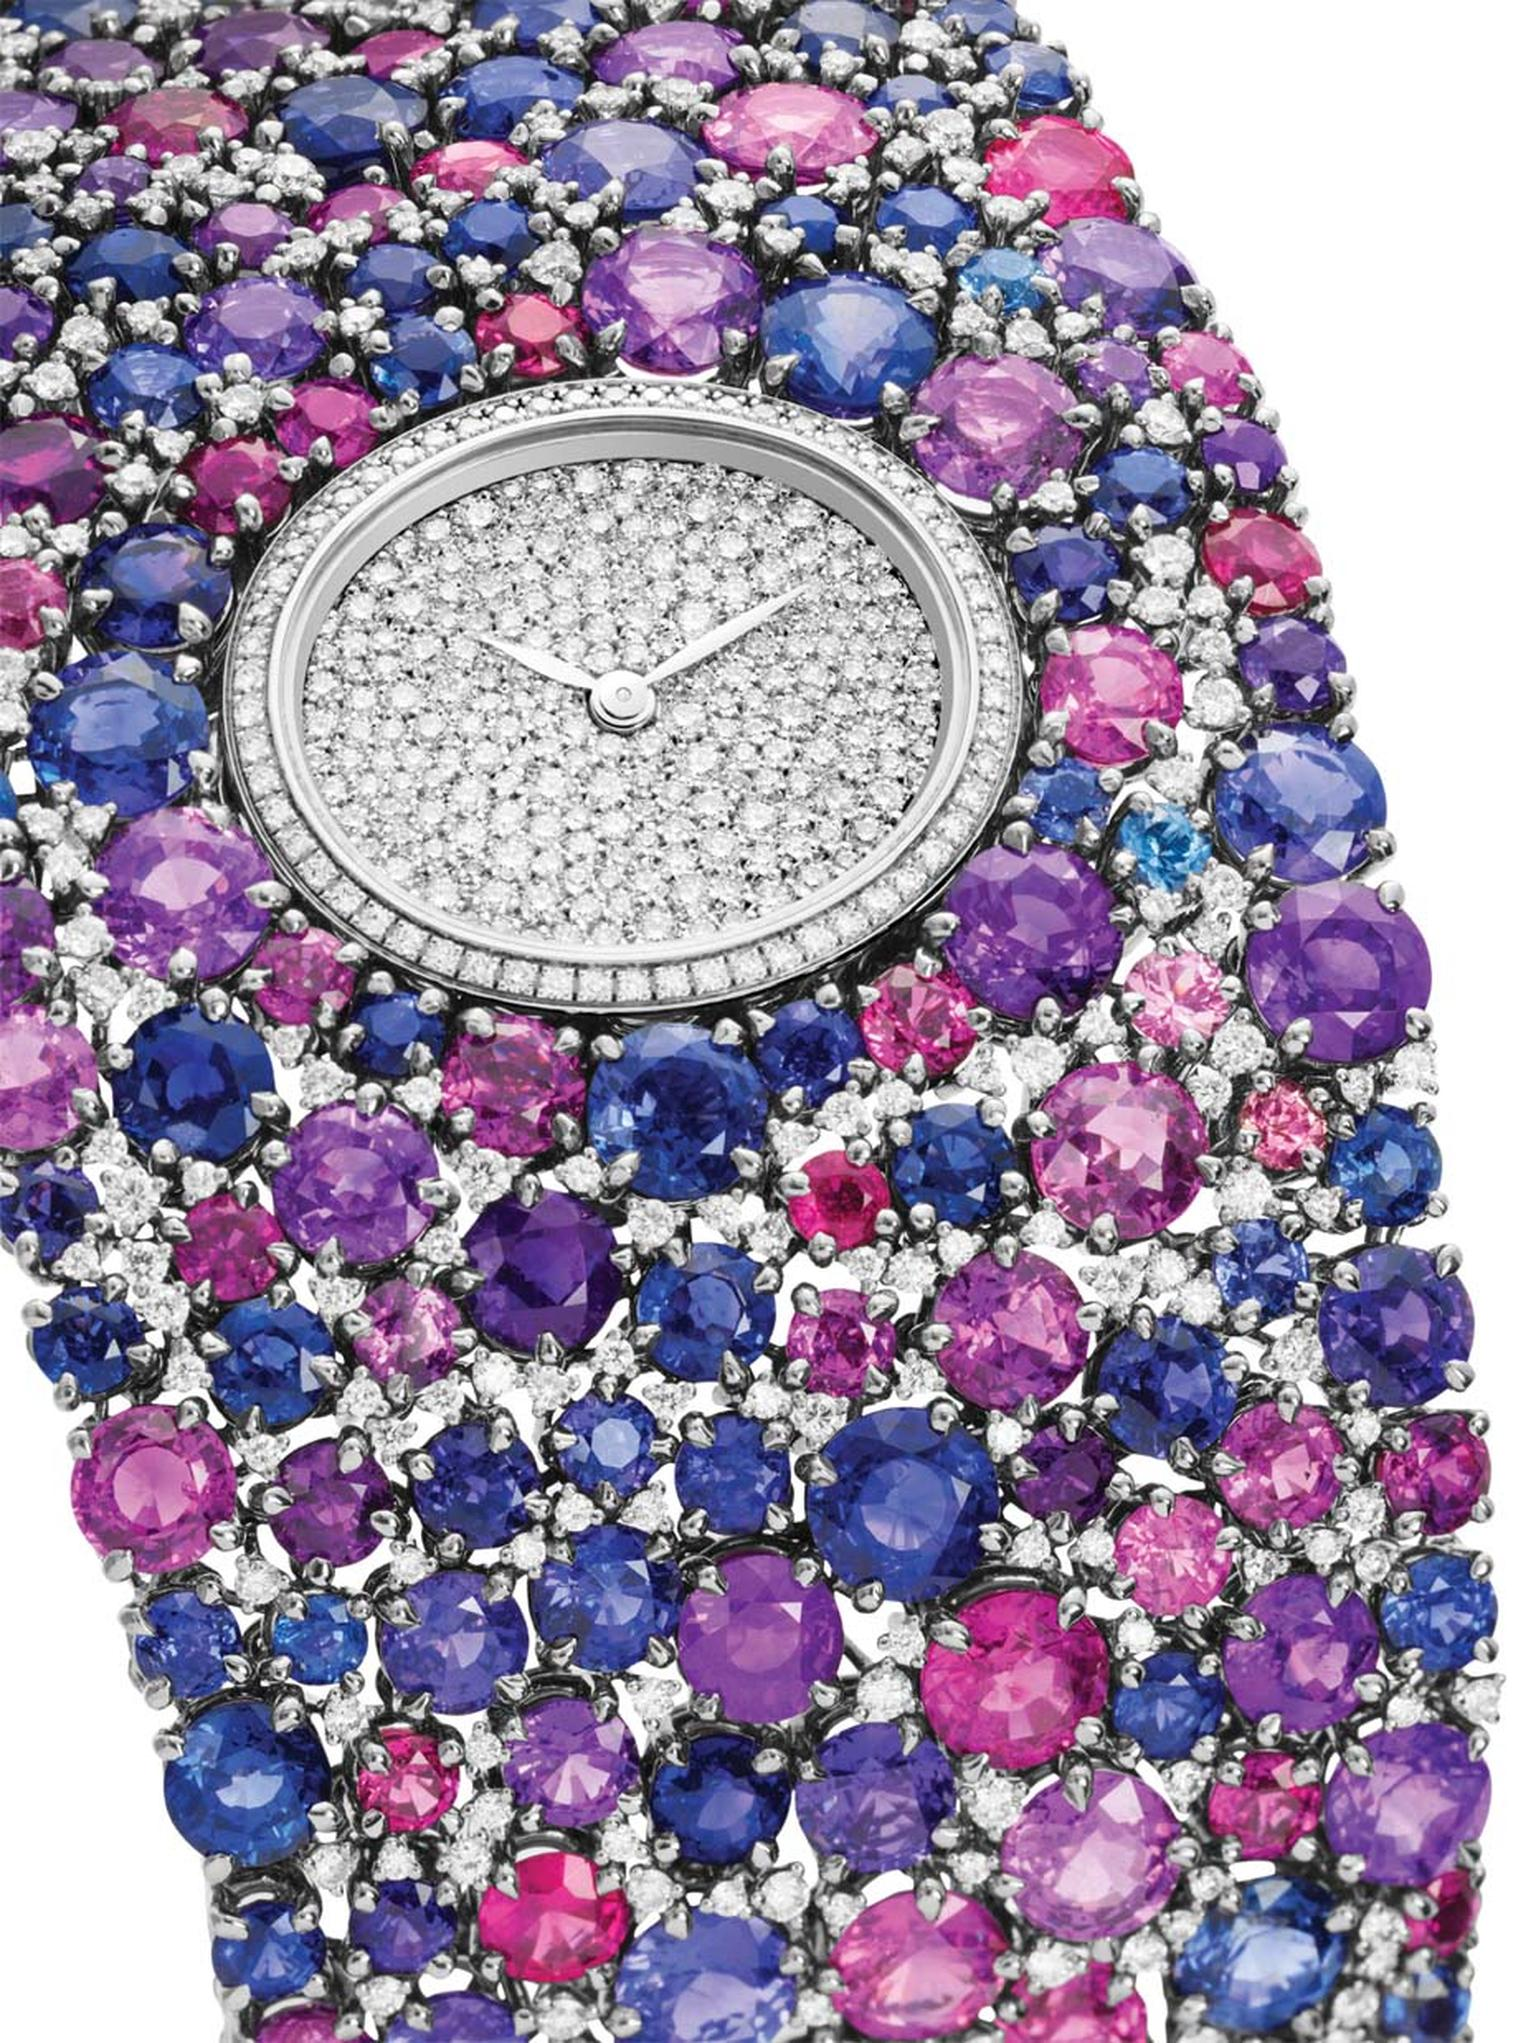 DeLaneau Grace Sapphires jewellery watch in white gold, set with 308 multi-coloured sapphires and 453 diamonds on the bracelet. The dial and case are set with a further 268 diamonds